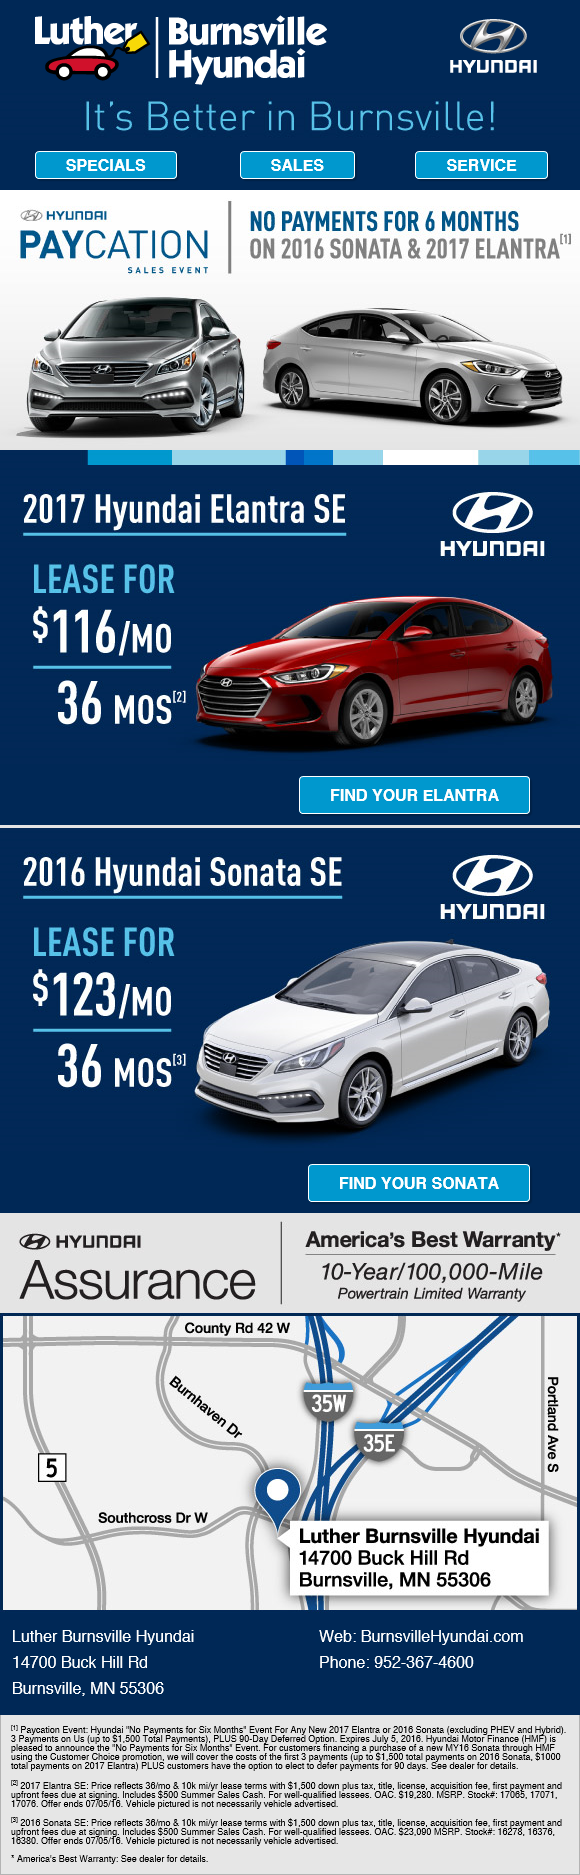 Luther Burnsville Hyundai Email